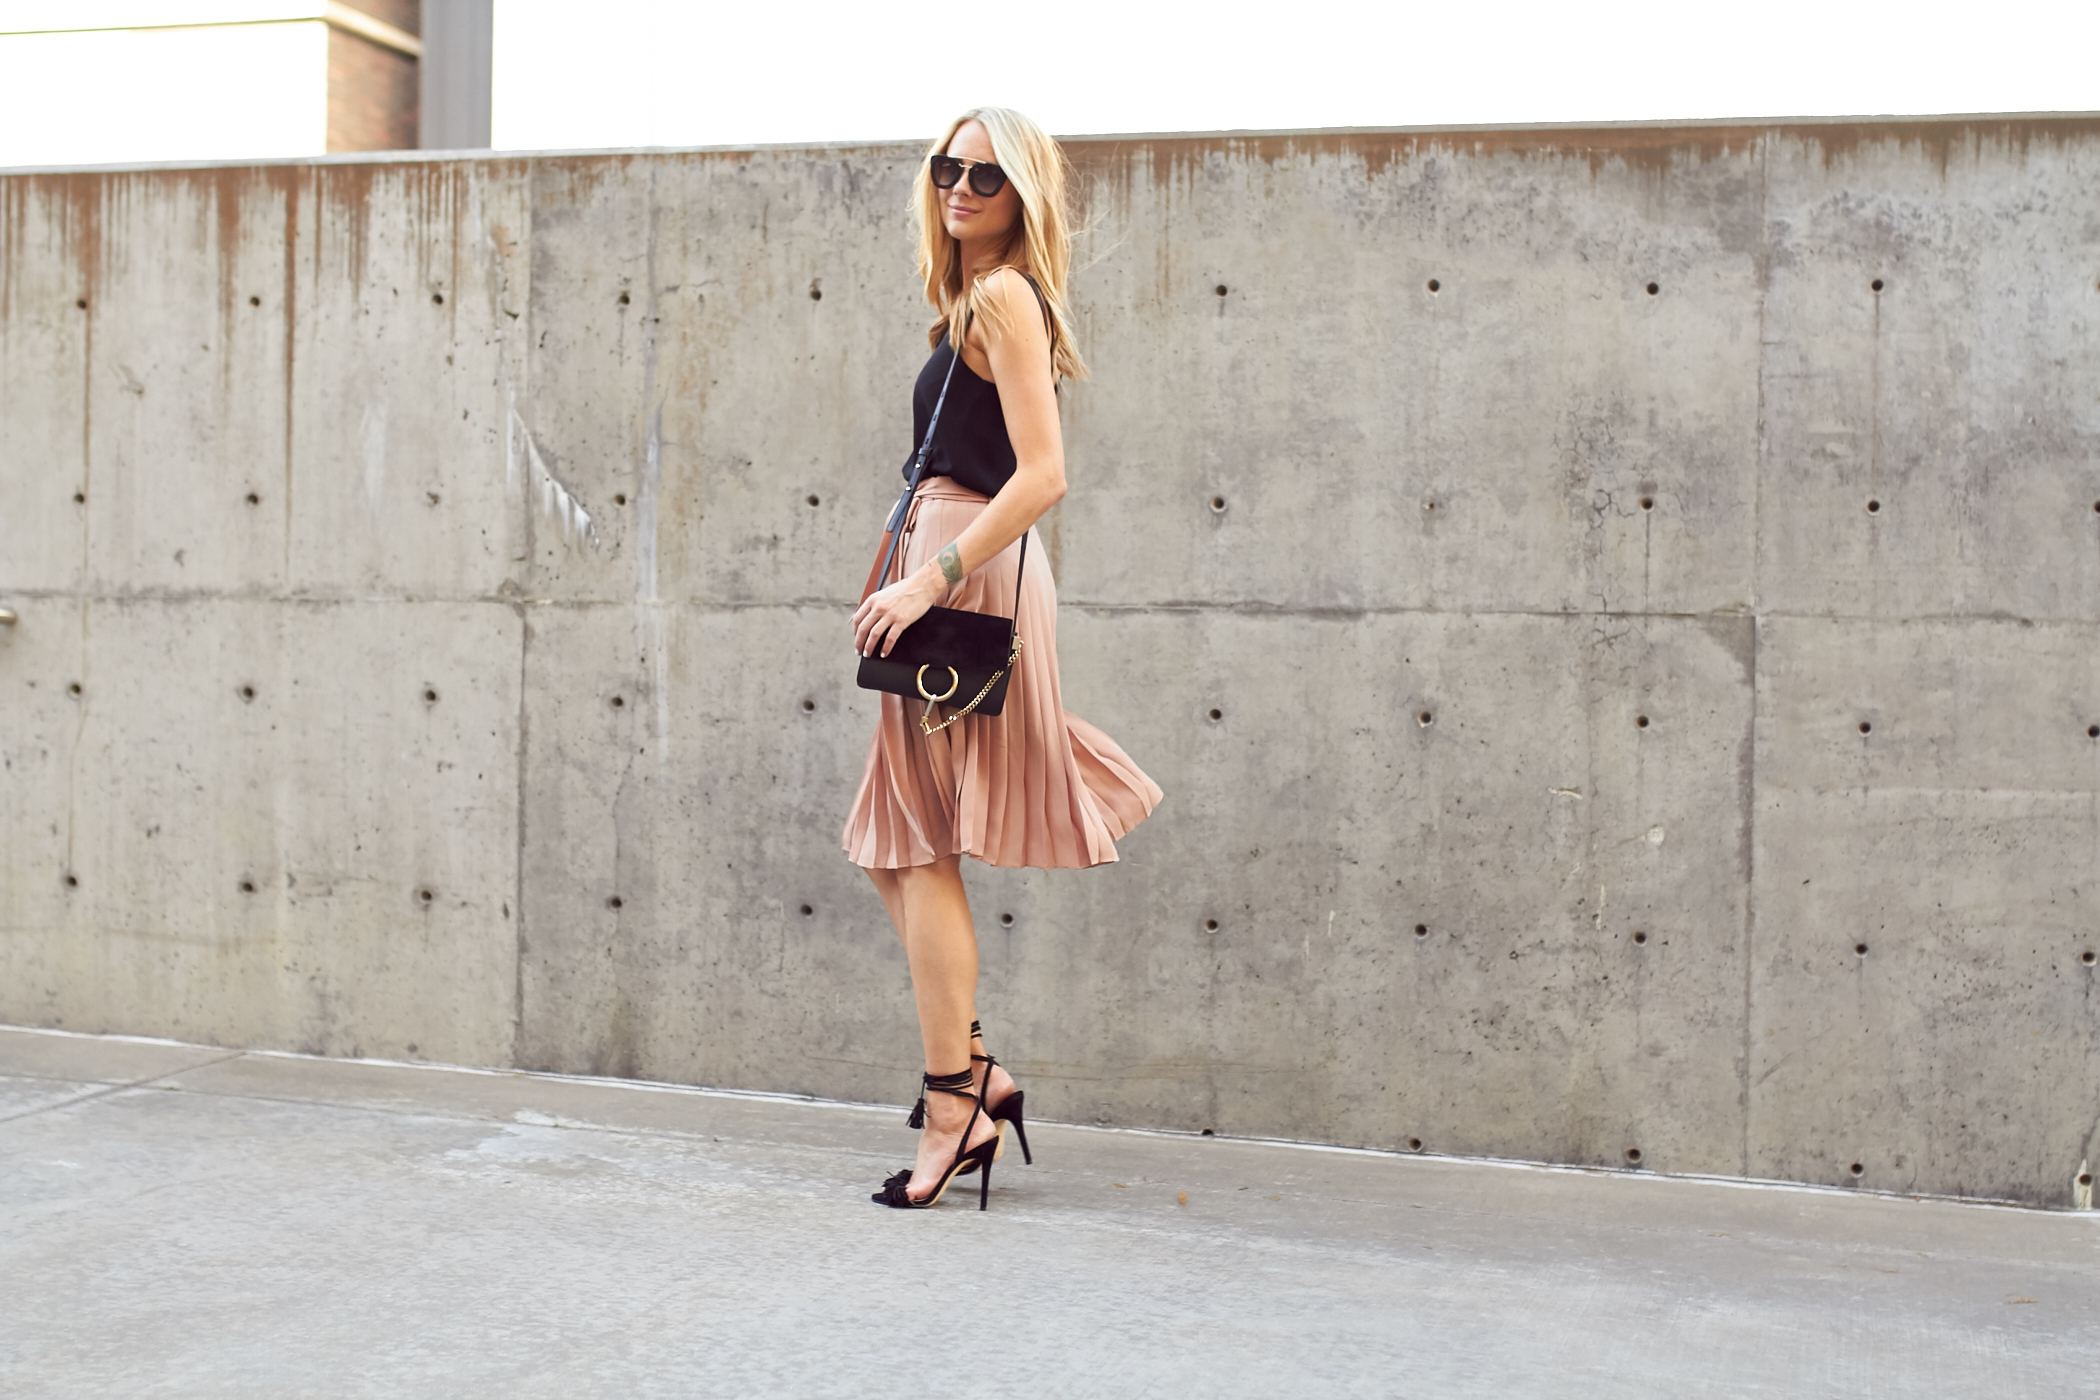 fashion-jackson-pink-pleated-skirt-chloe-faye-handbag